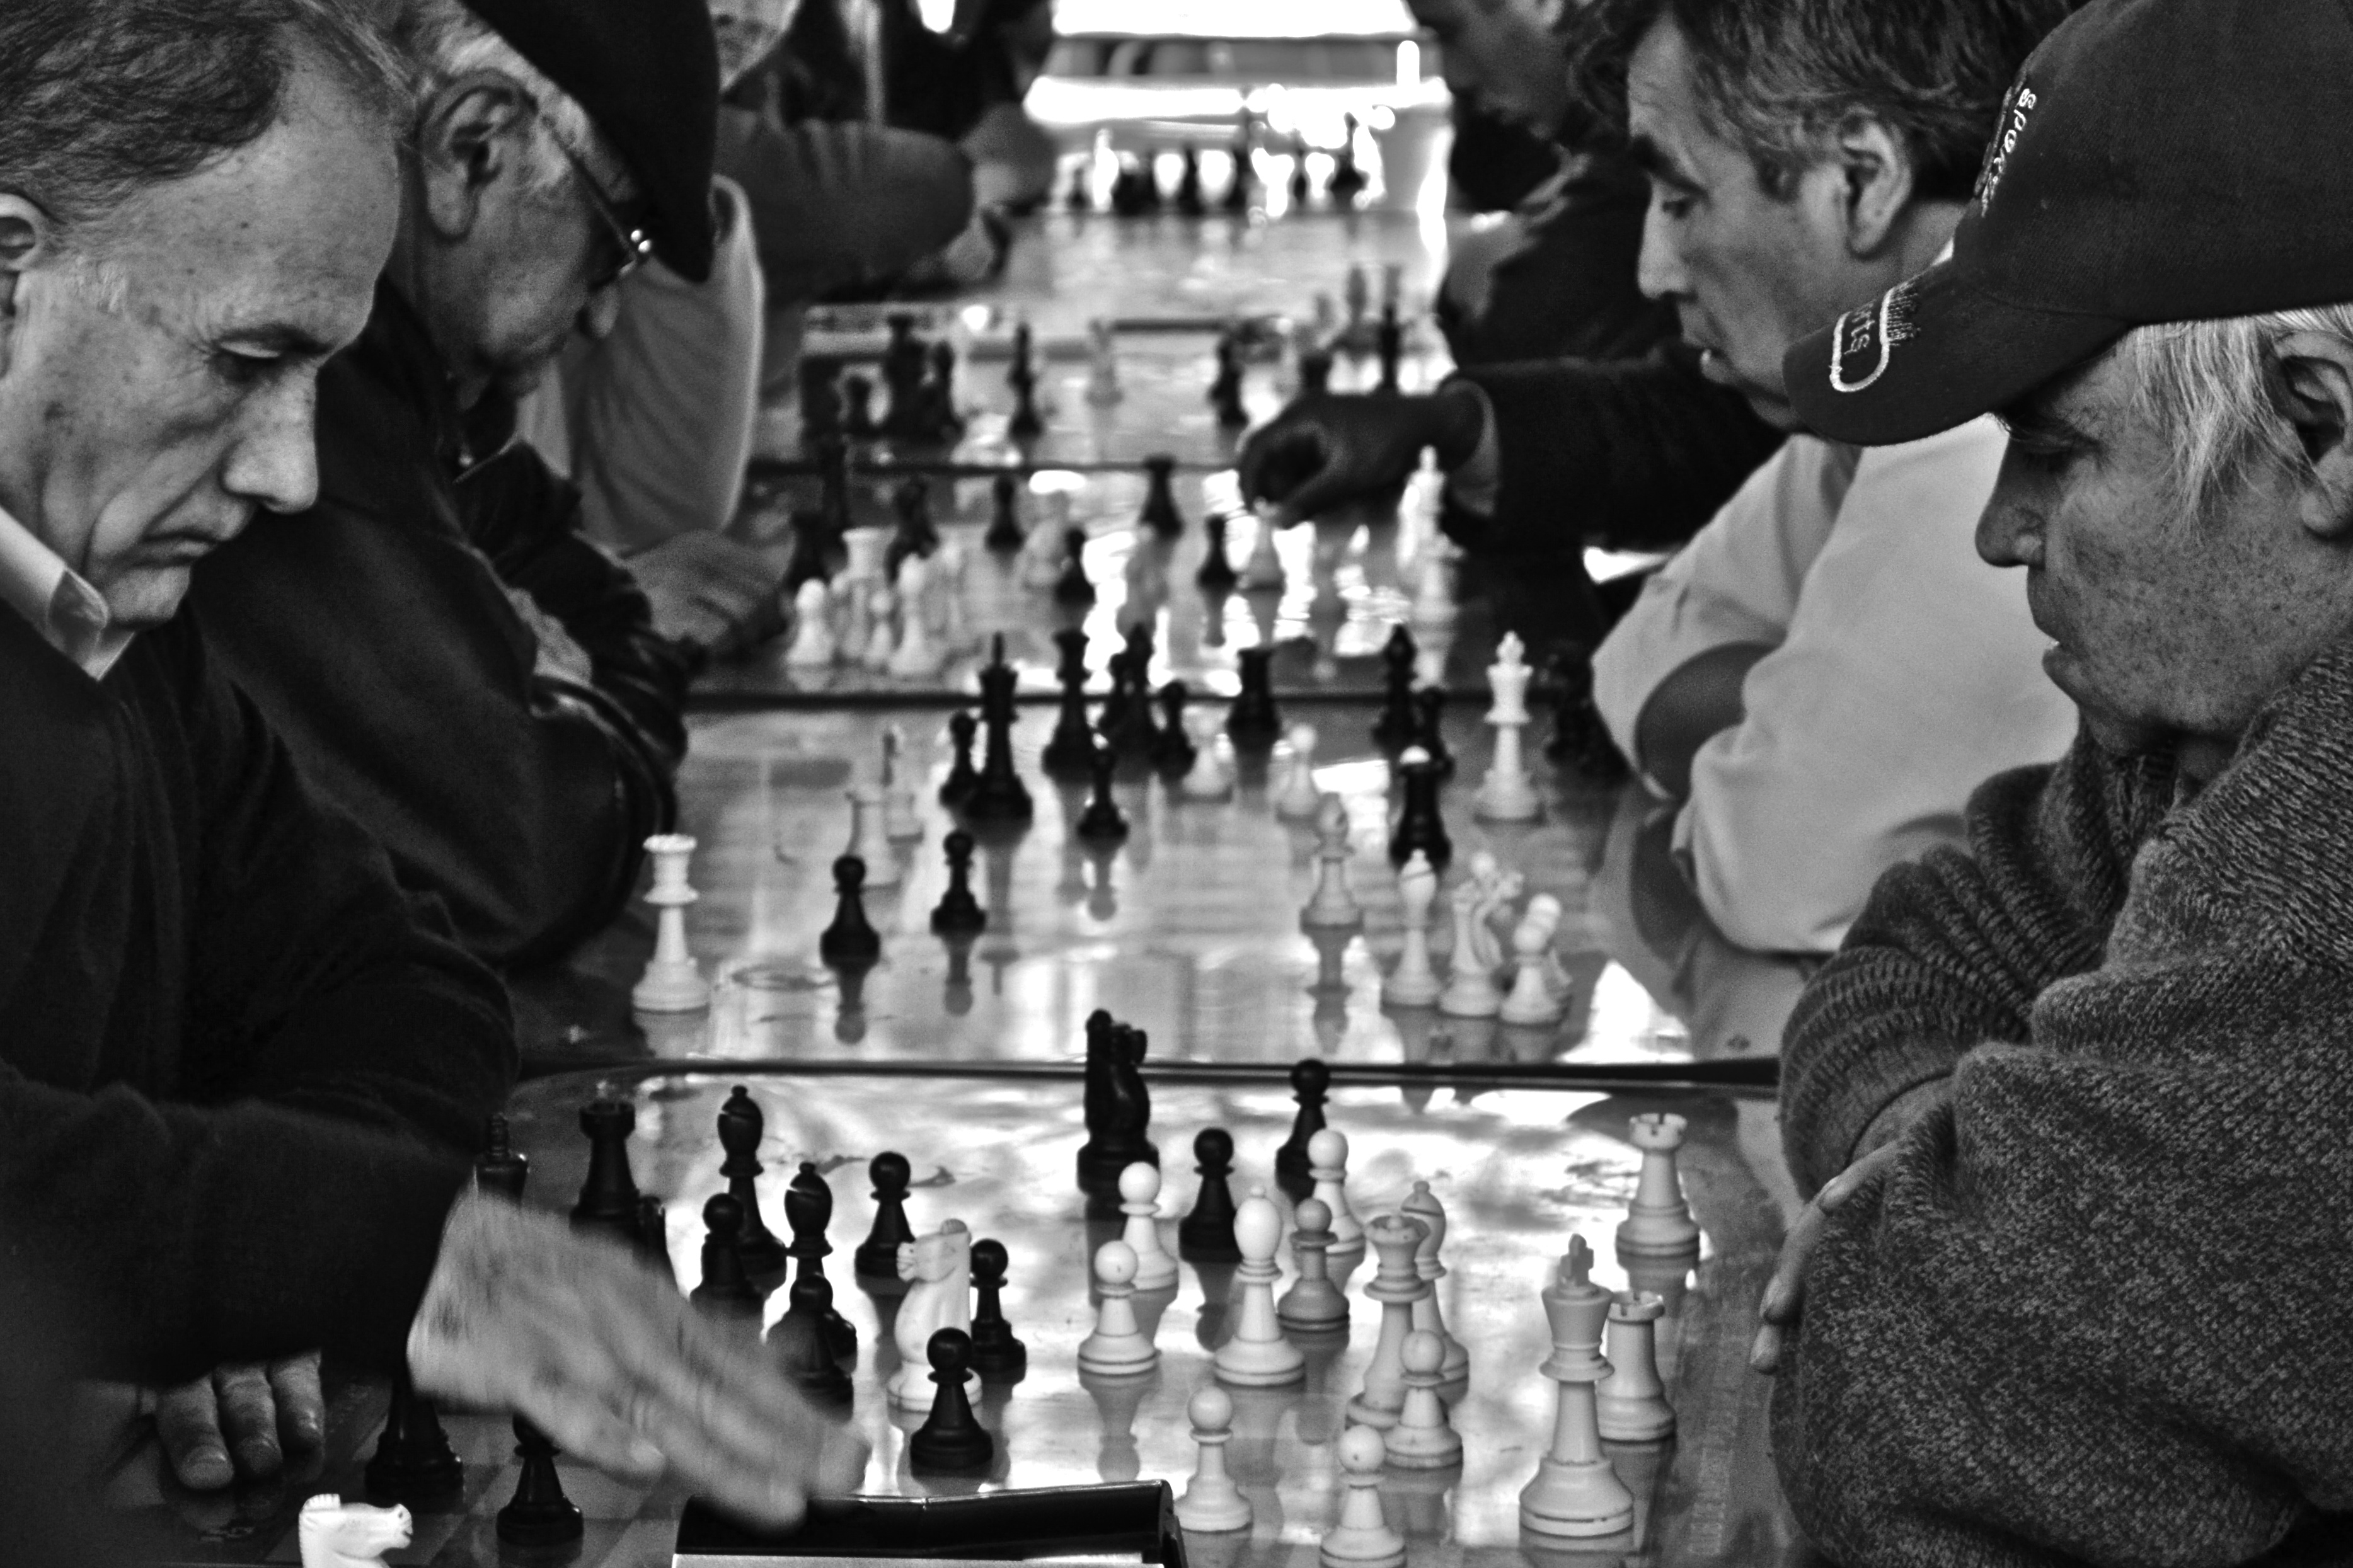 chess players, santiago